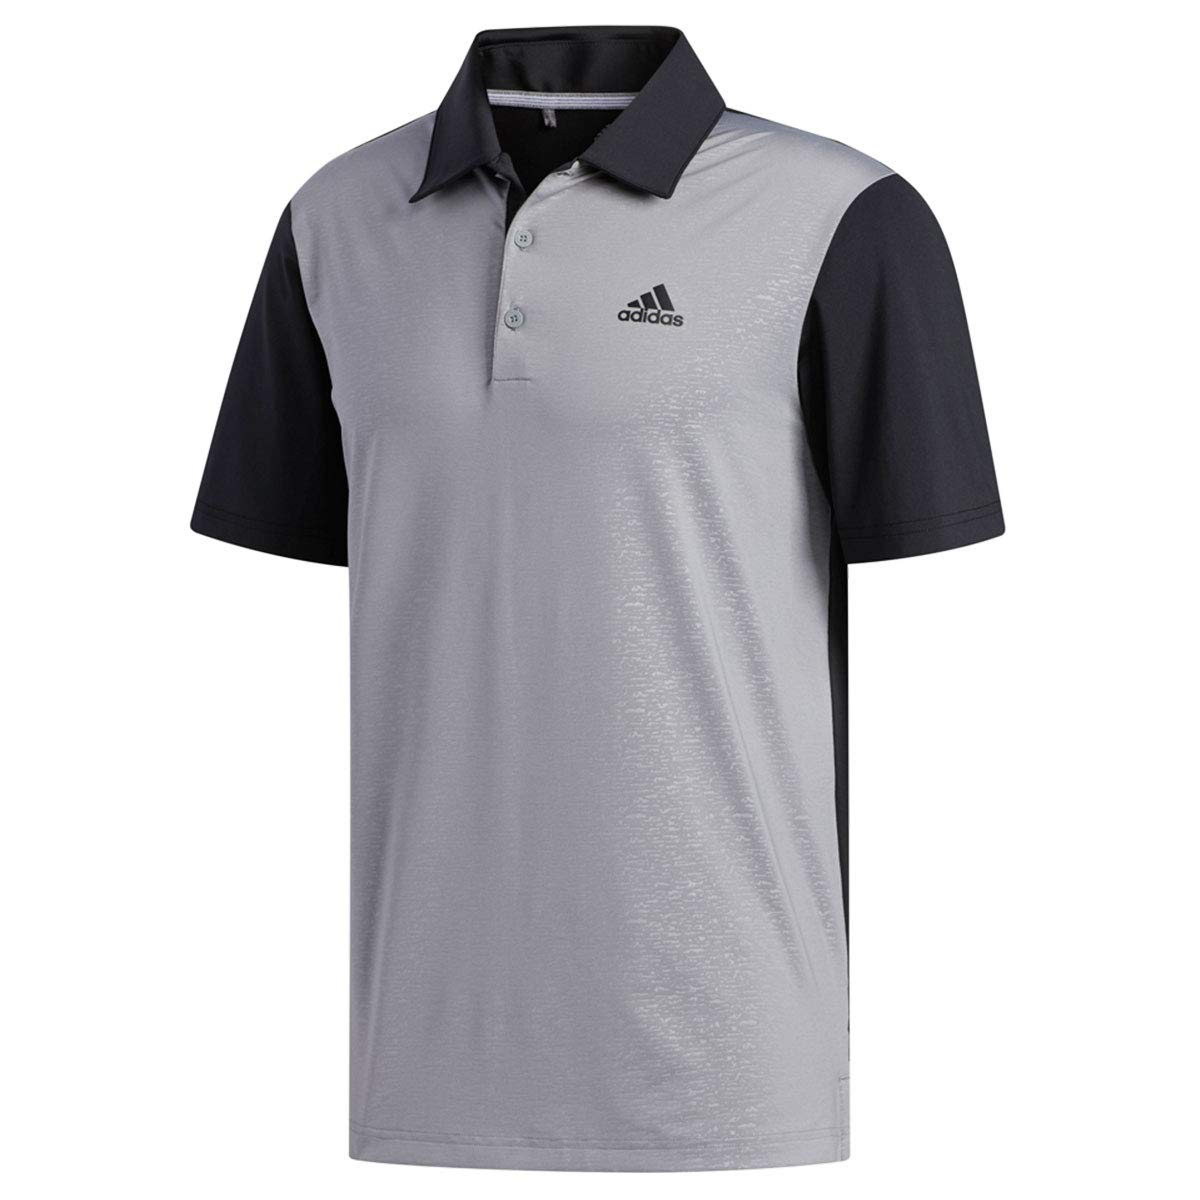 fd56a3da Amazon.com : adidas Golf 2019 Mens Ultimate 2.0 Novelty Short Sleeve Golf Polo  Shirt : Sports & Outdoors